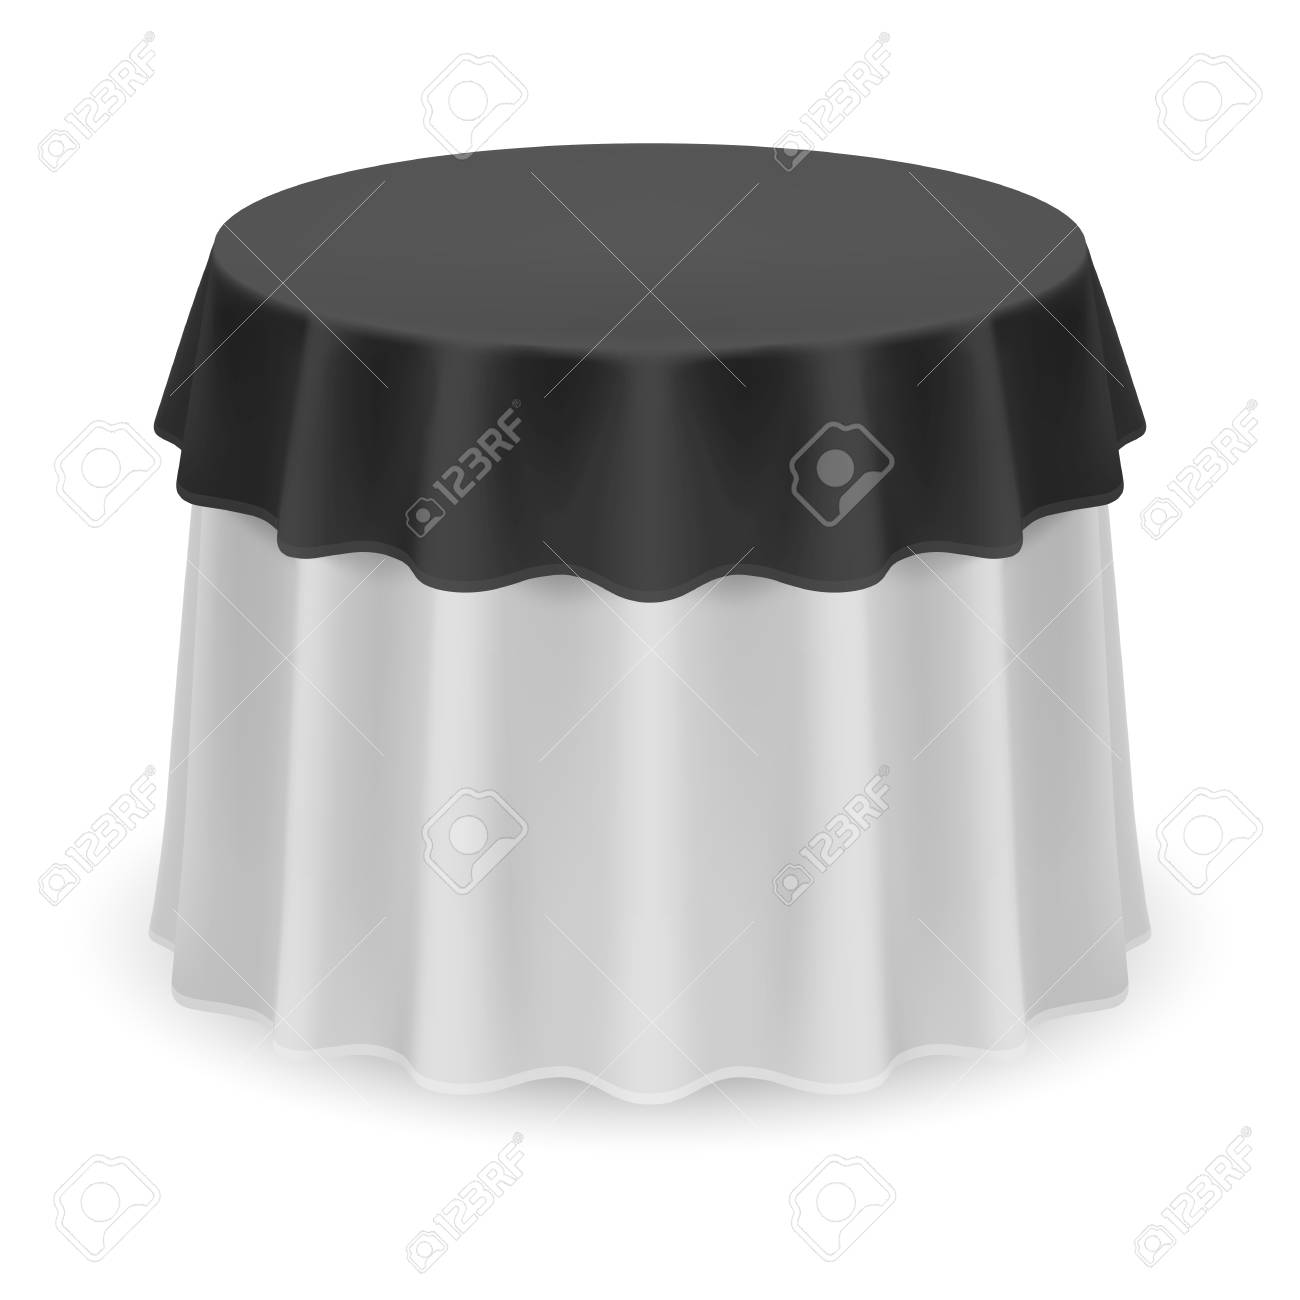 Round Table With Tablecloth.Isolated Blank Round Table With Tablecloth In Black And White